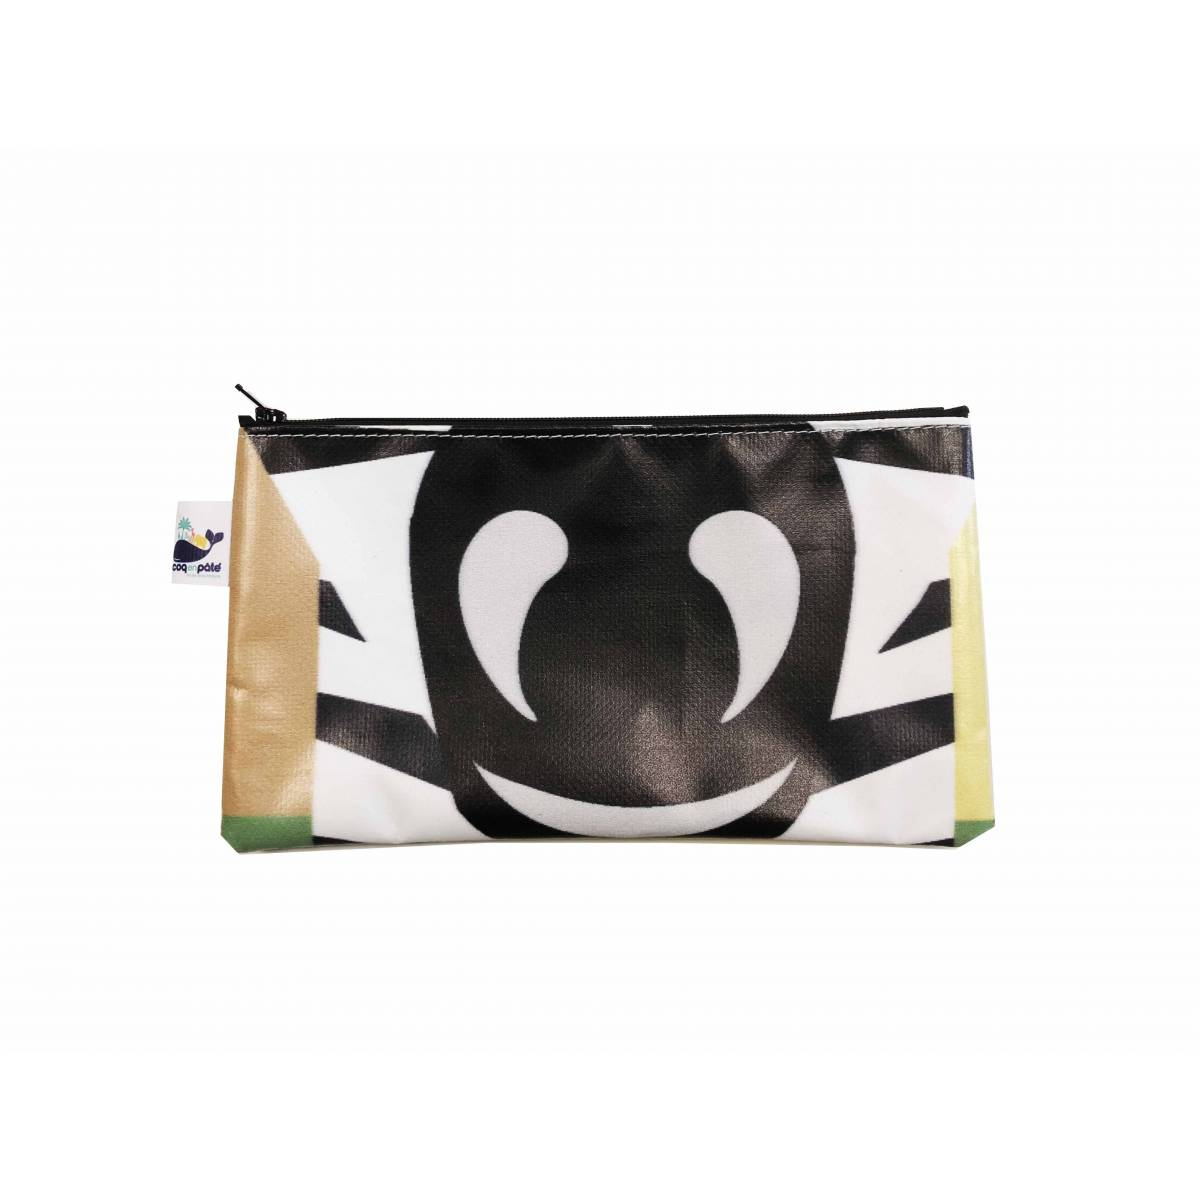 Pencil case - Limited Edition n°29/40